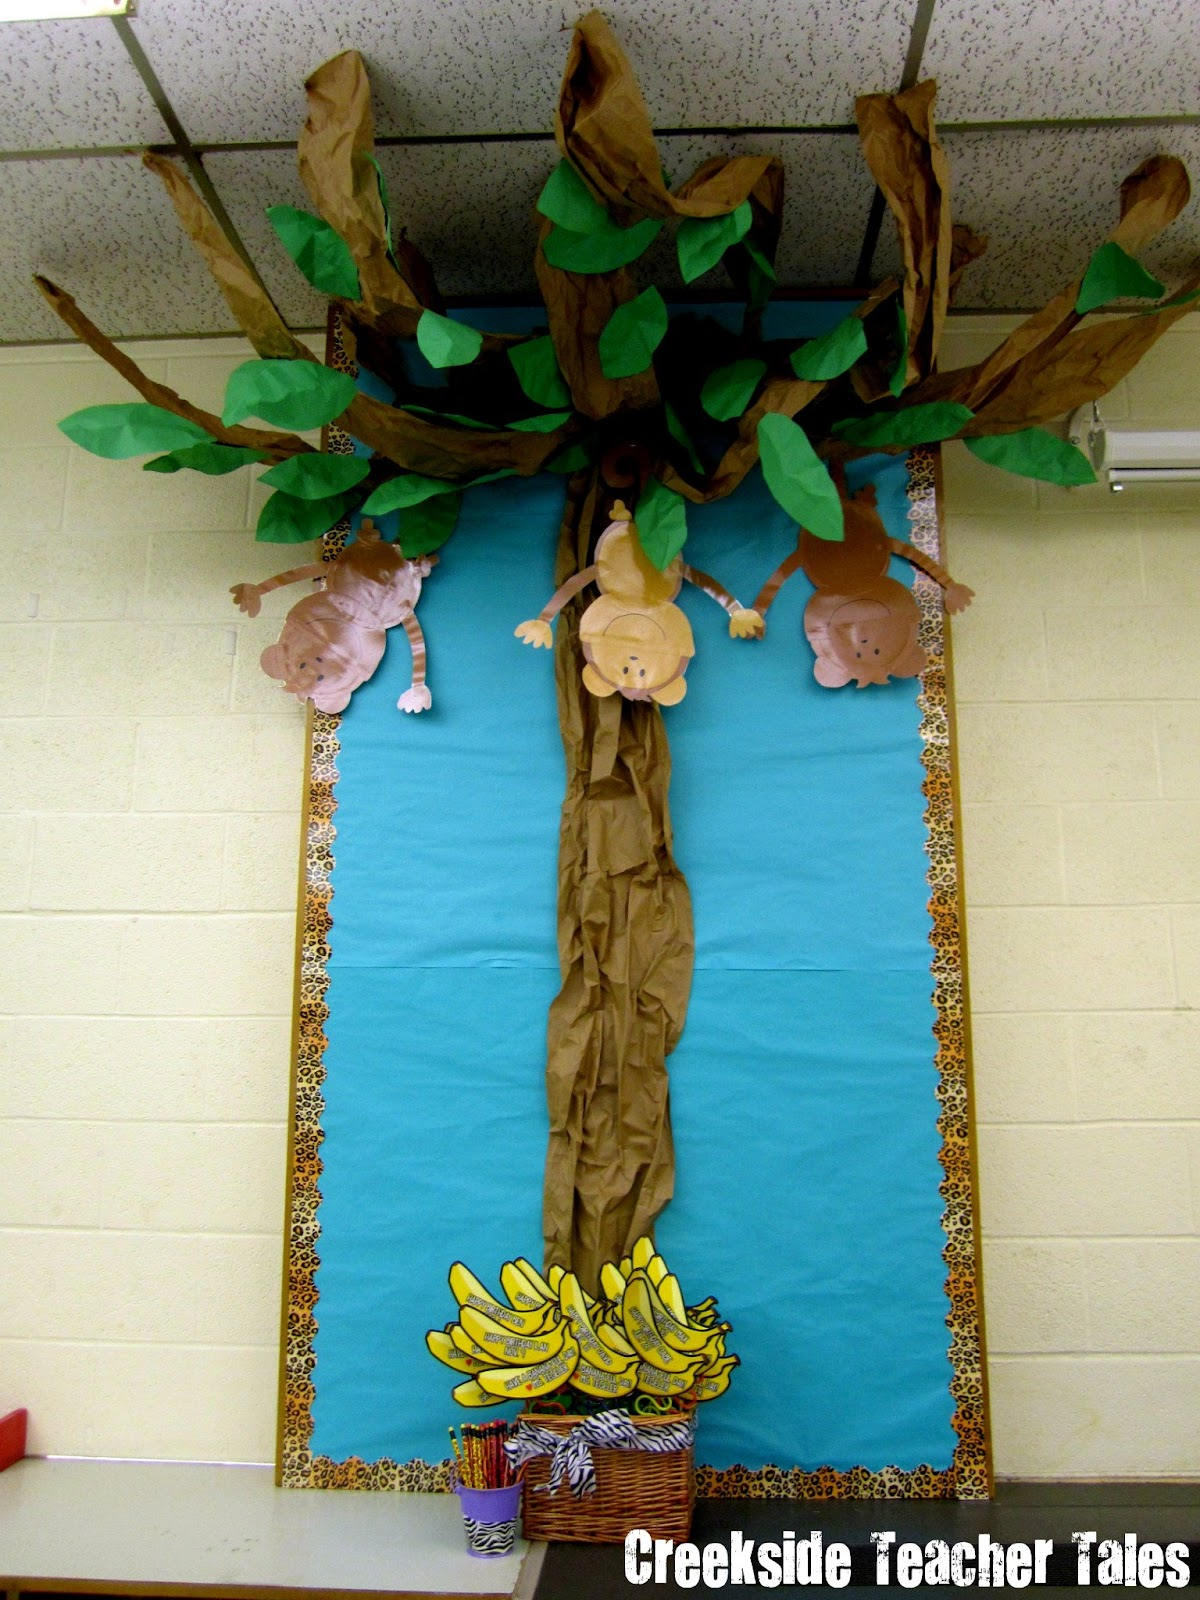 Jungle Classroom Decoration Ideas ~ Freebie made it monday creekside teacher tales